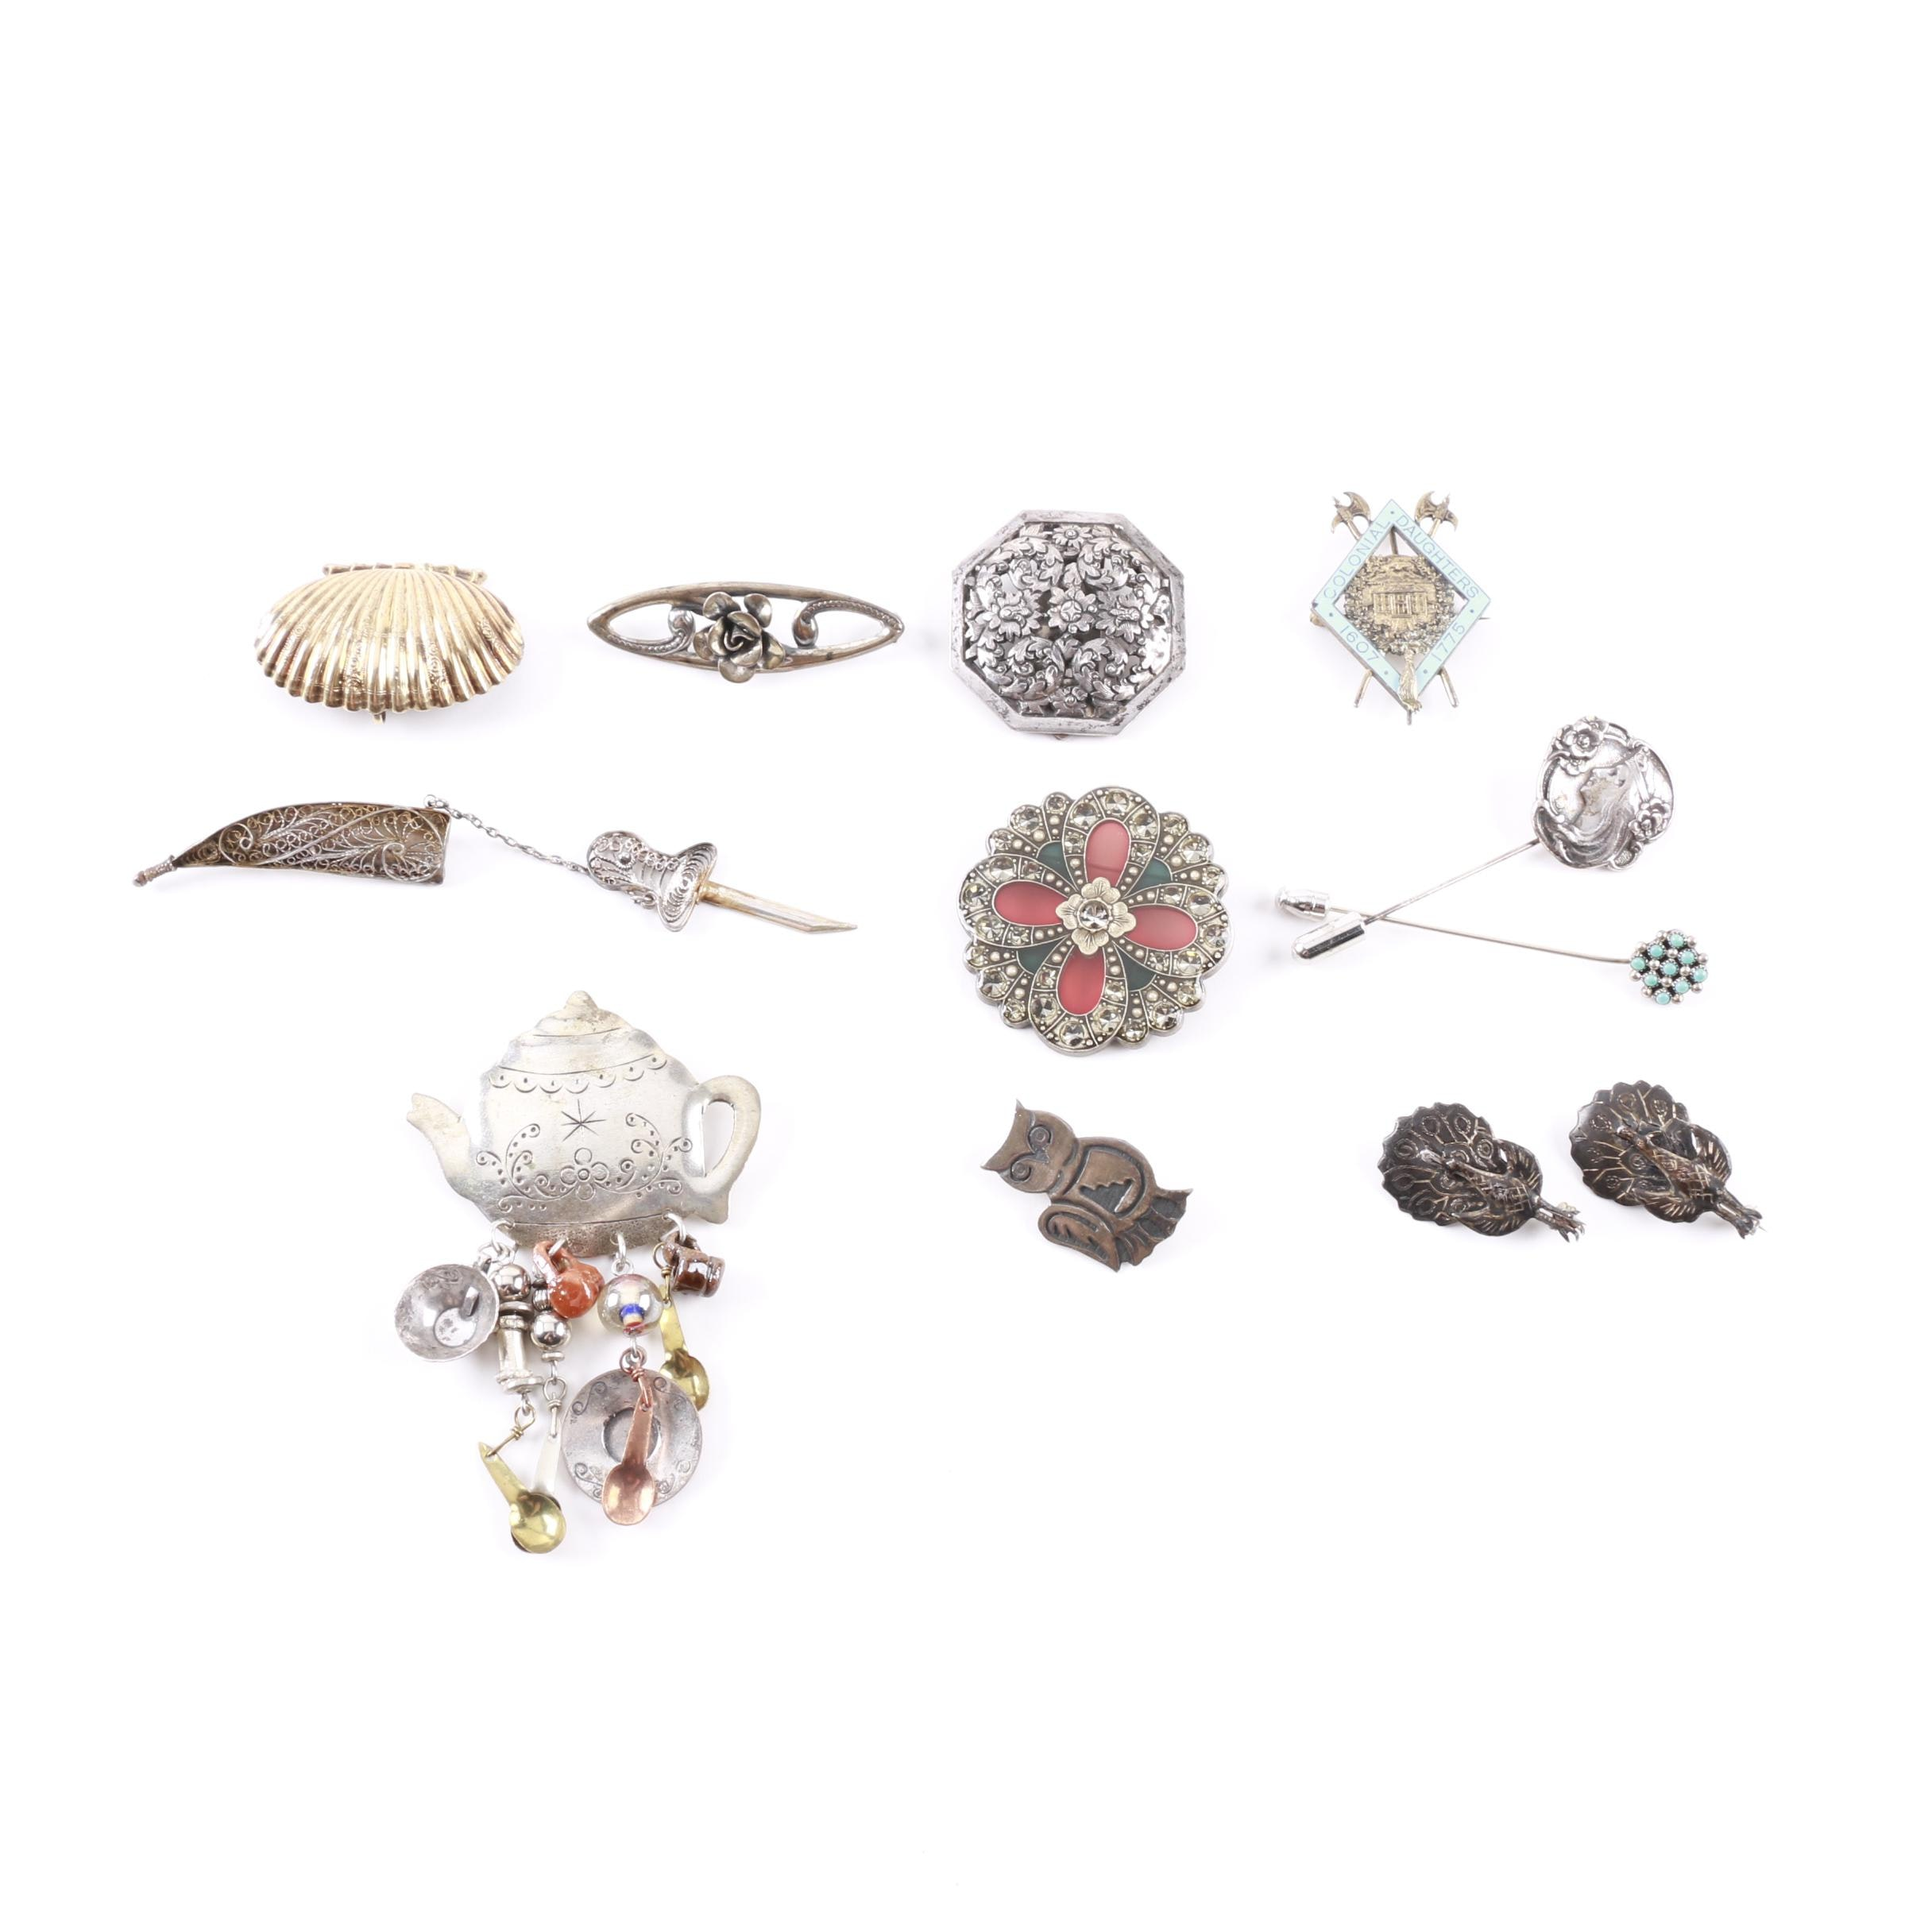 Vintage Sterling Silver, 800 Silver and Costume Jewelry